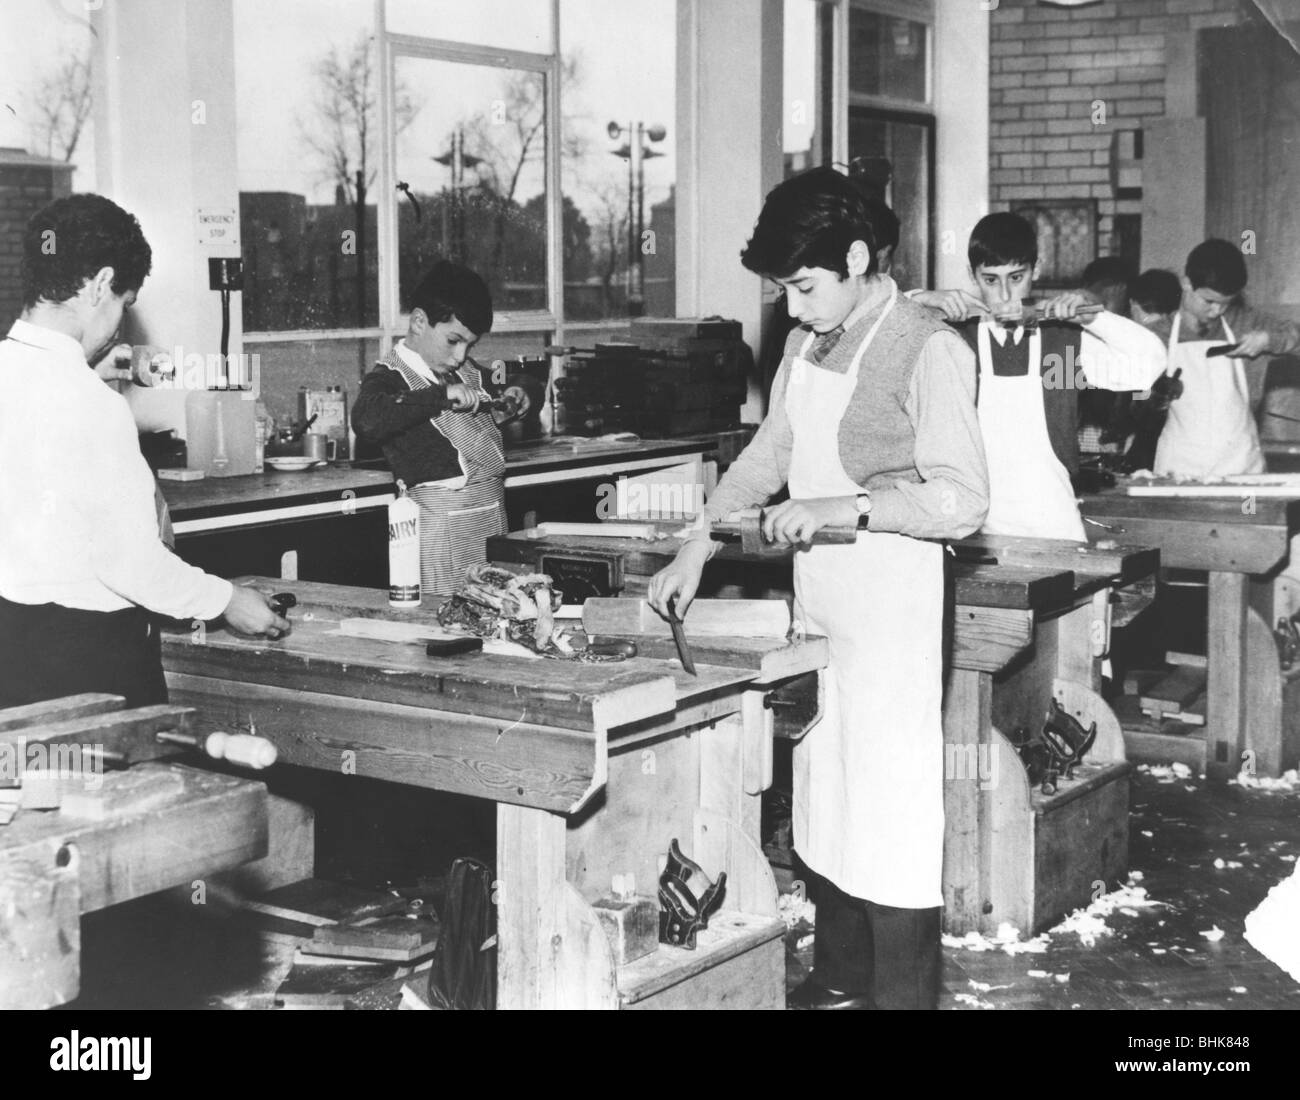 Carpentry class at the Jewish Free School, 1960s. - Stock Image